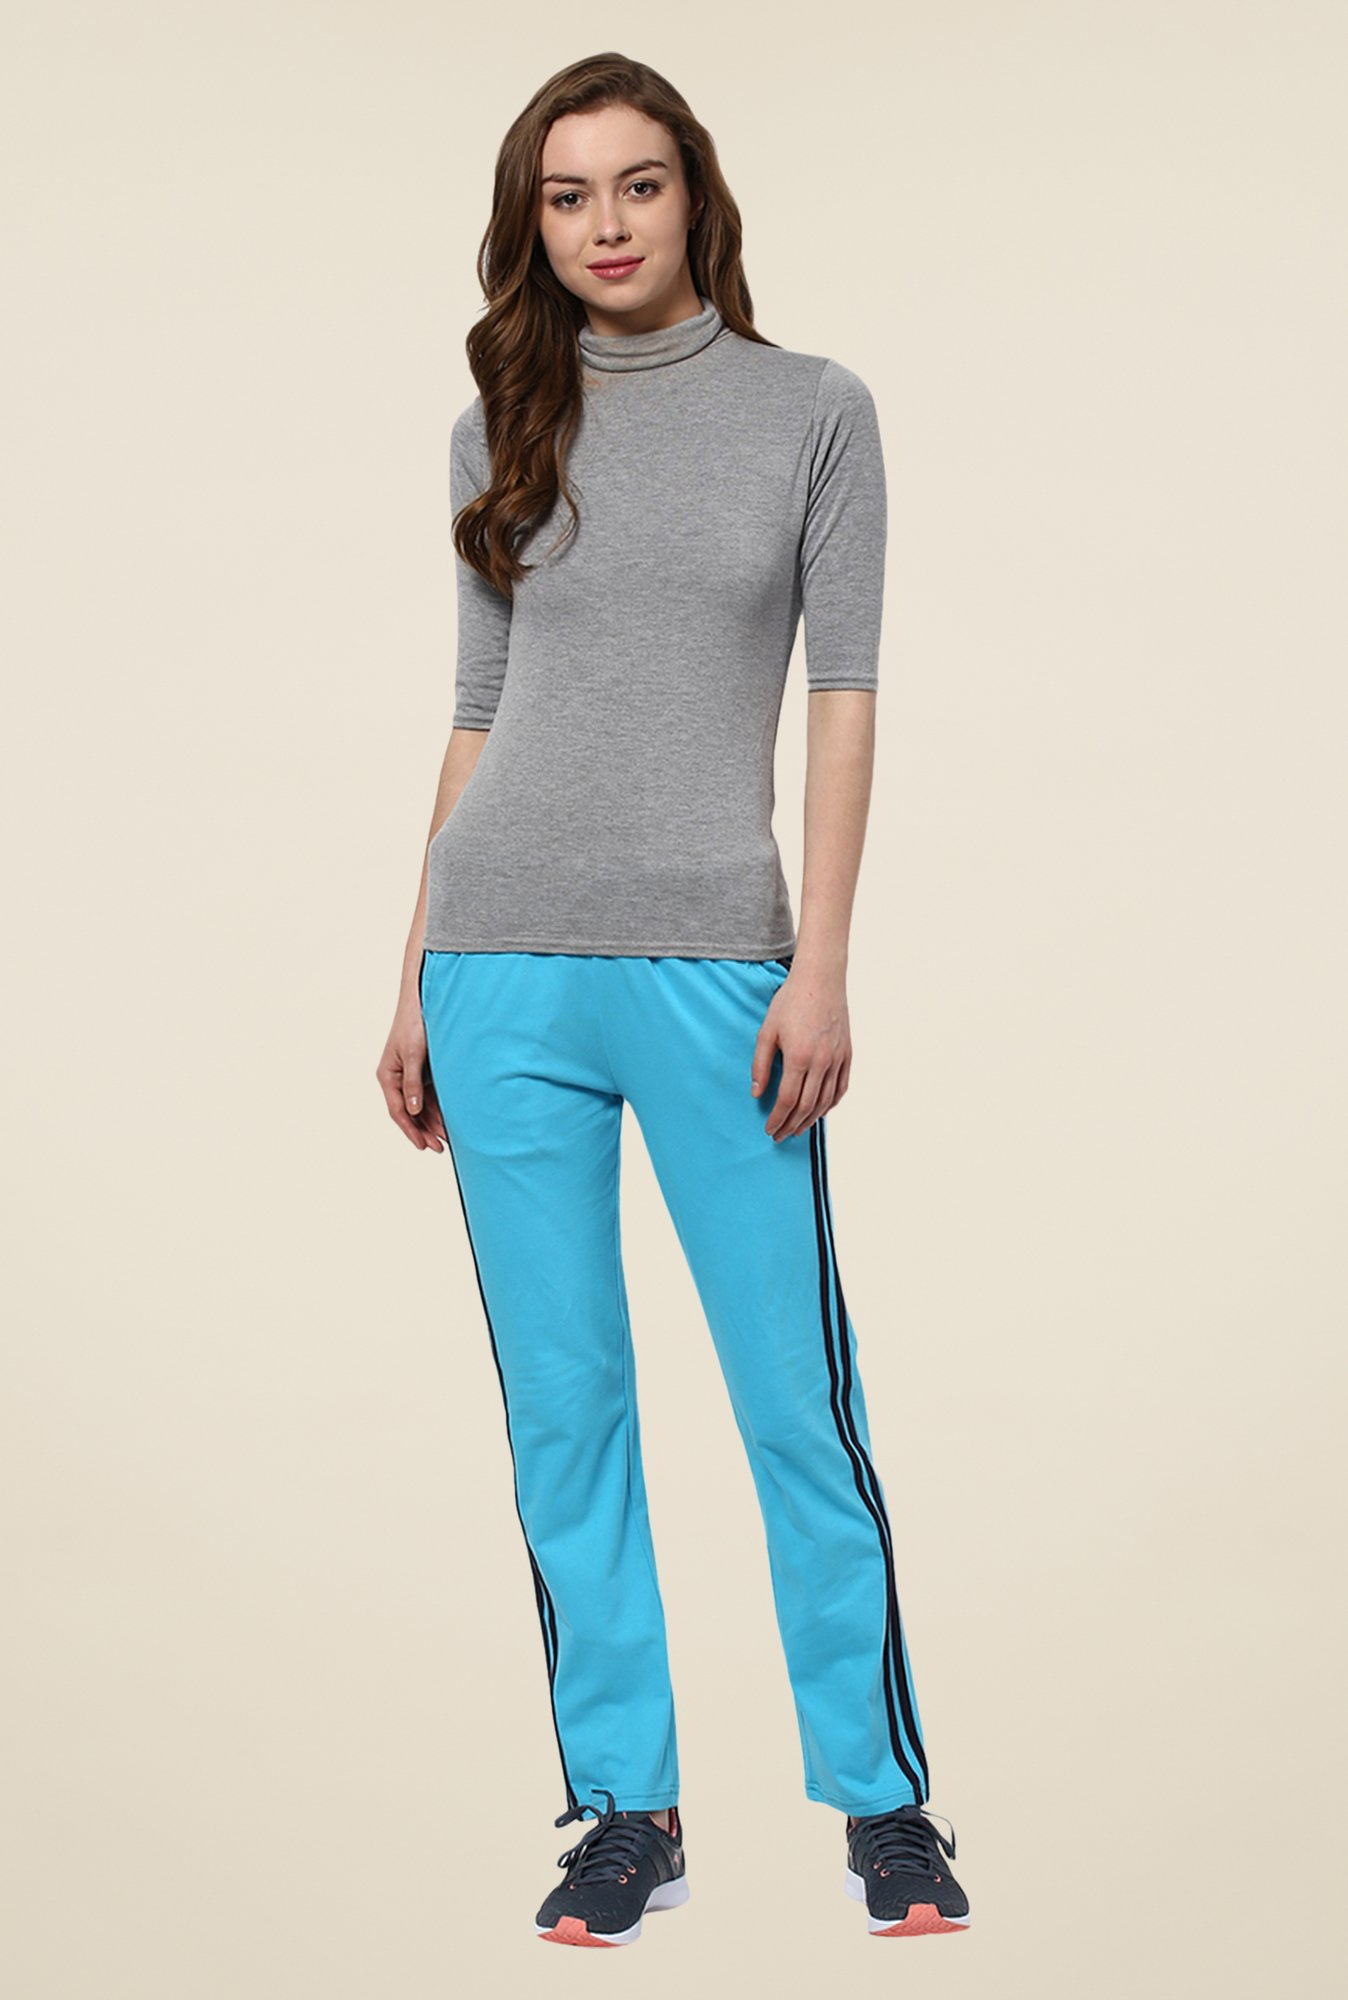 Yepme Blue Leanne Trackpants